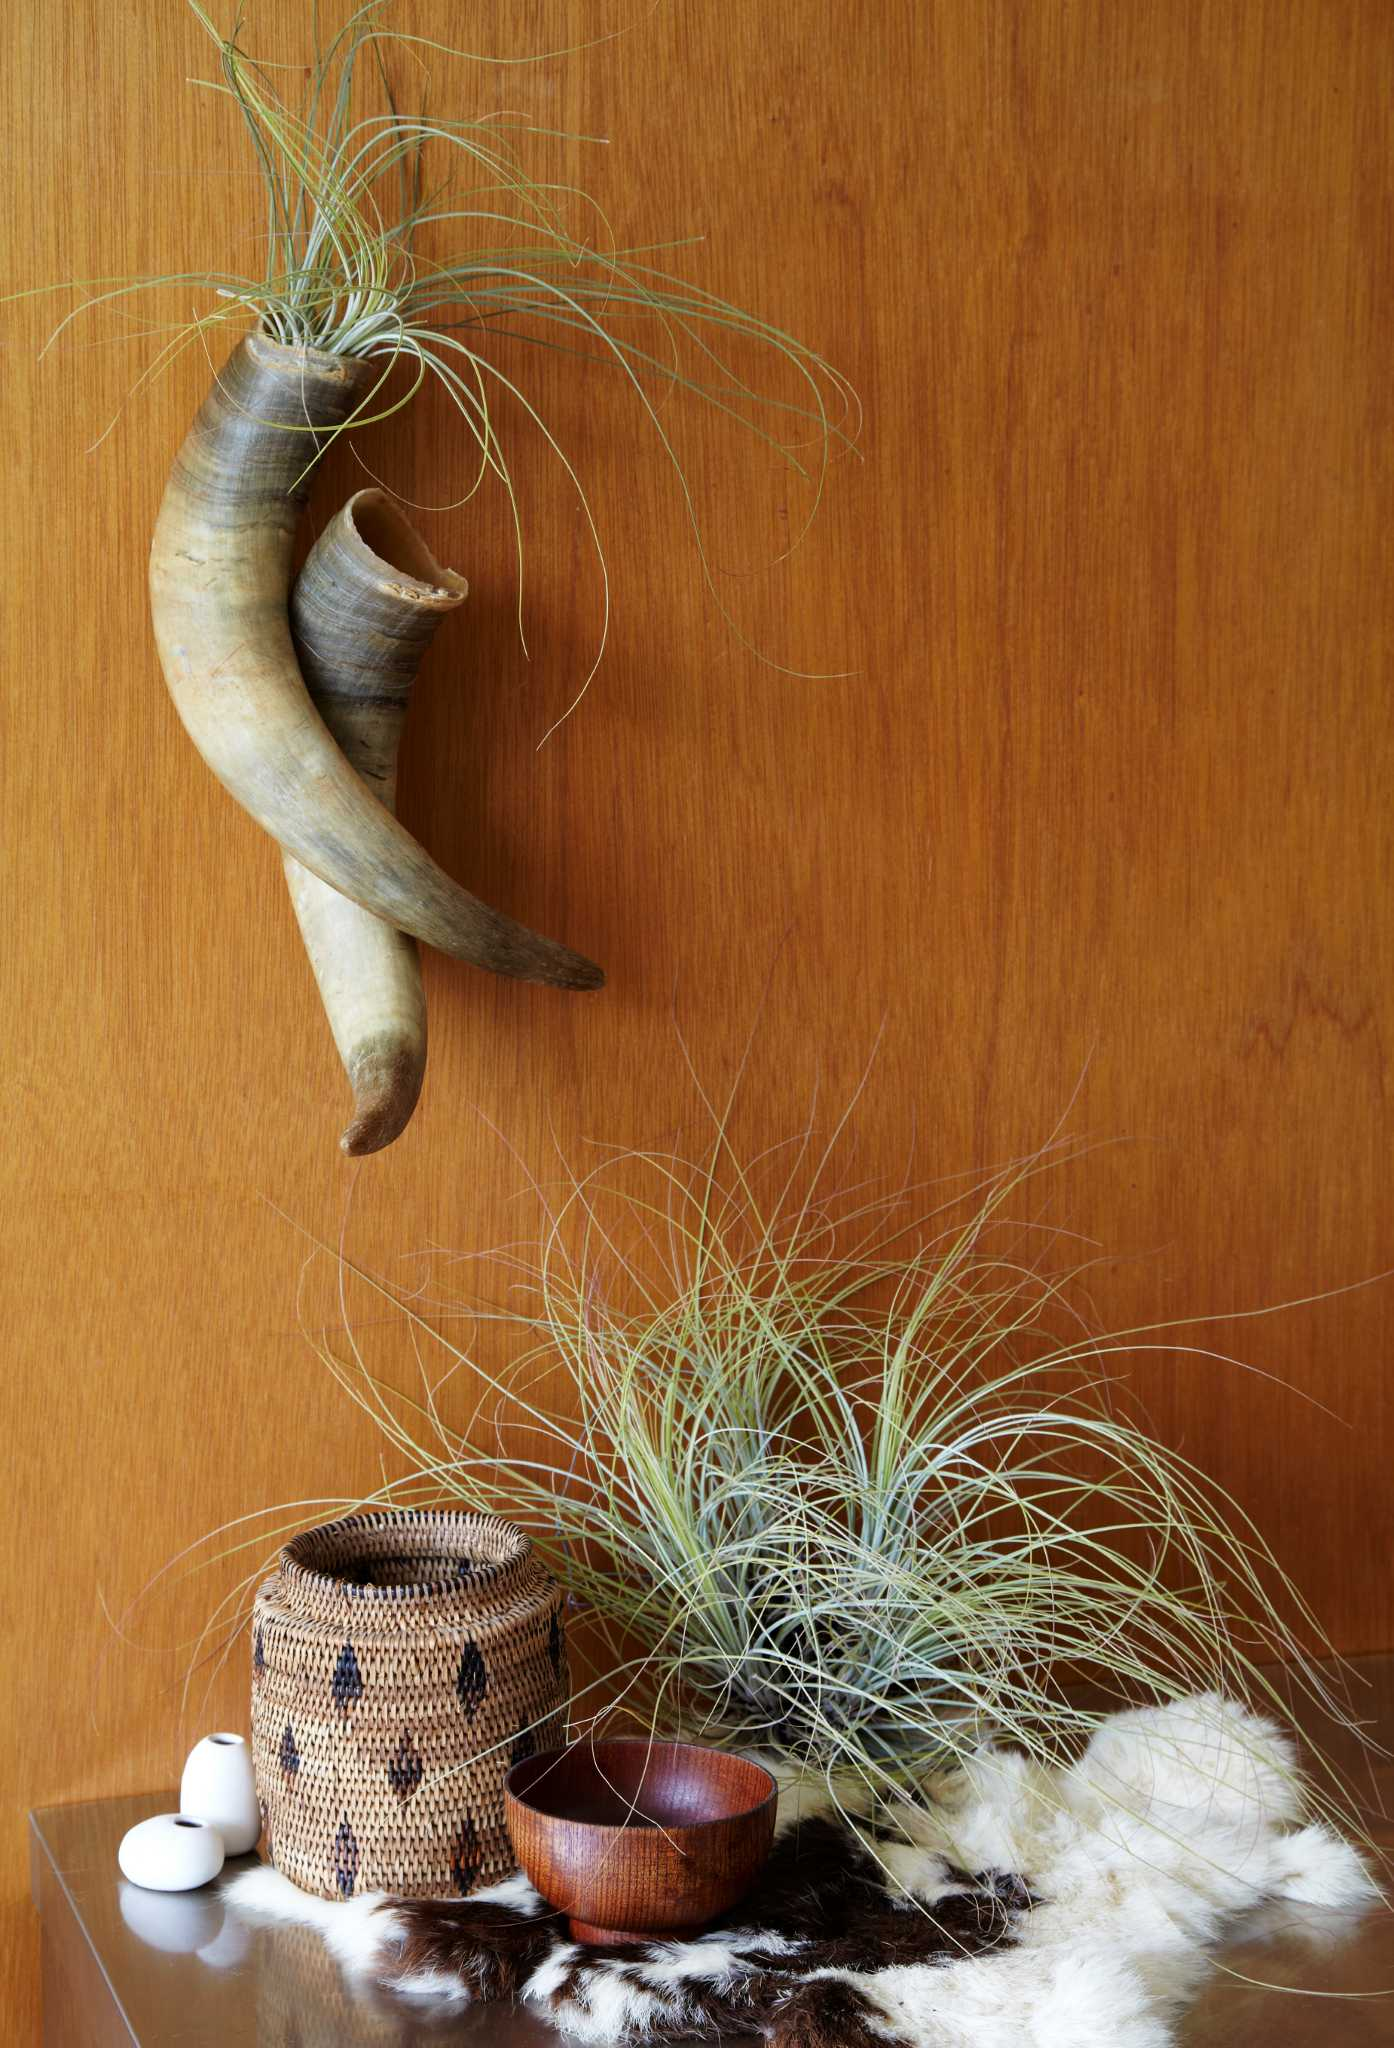 Decorating with air plants - SFGate